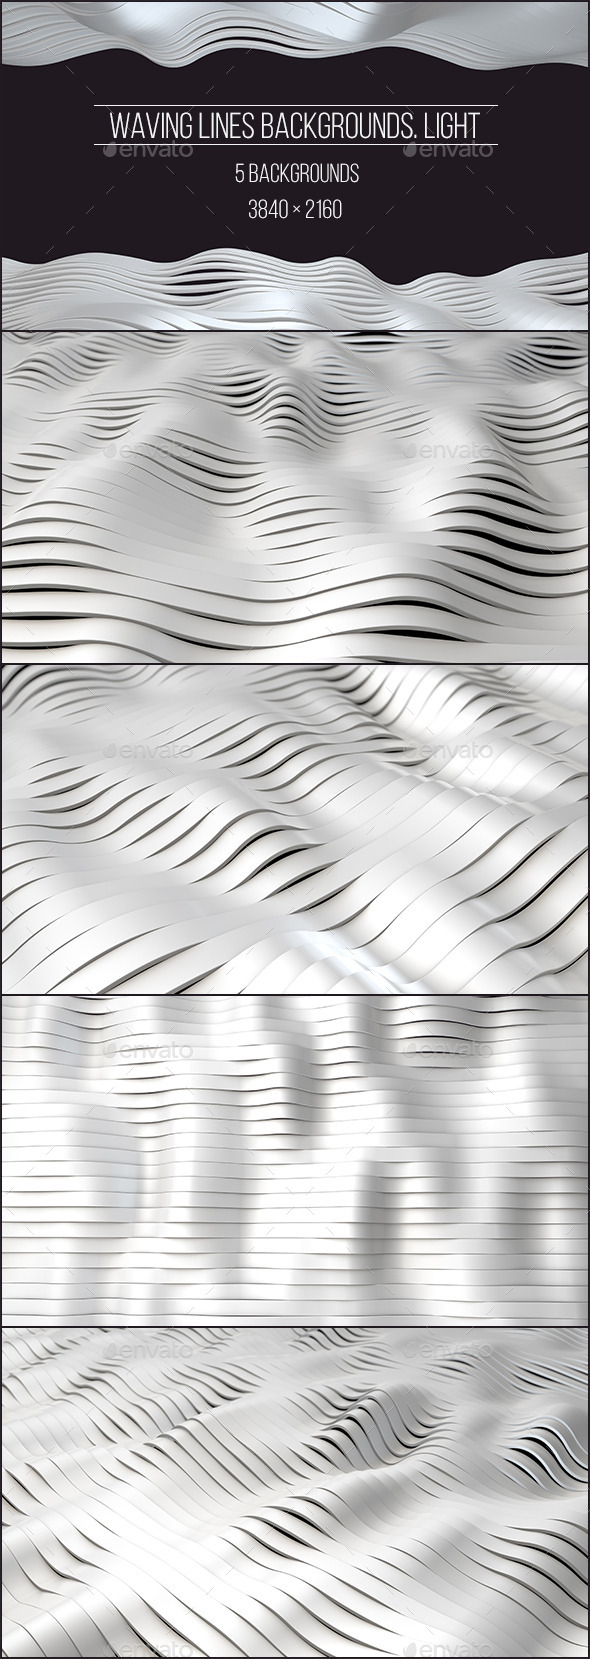 Waving Lines Backgrounds. Light - Abstract Backgrounds